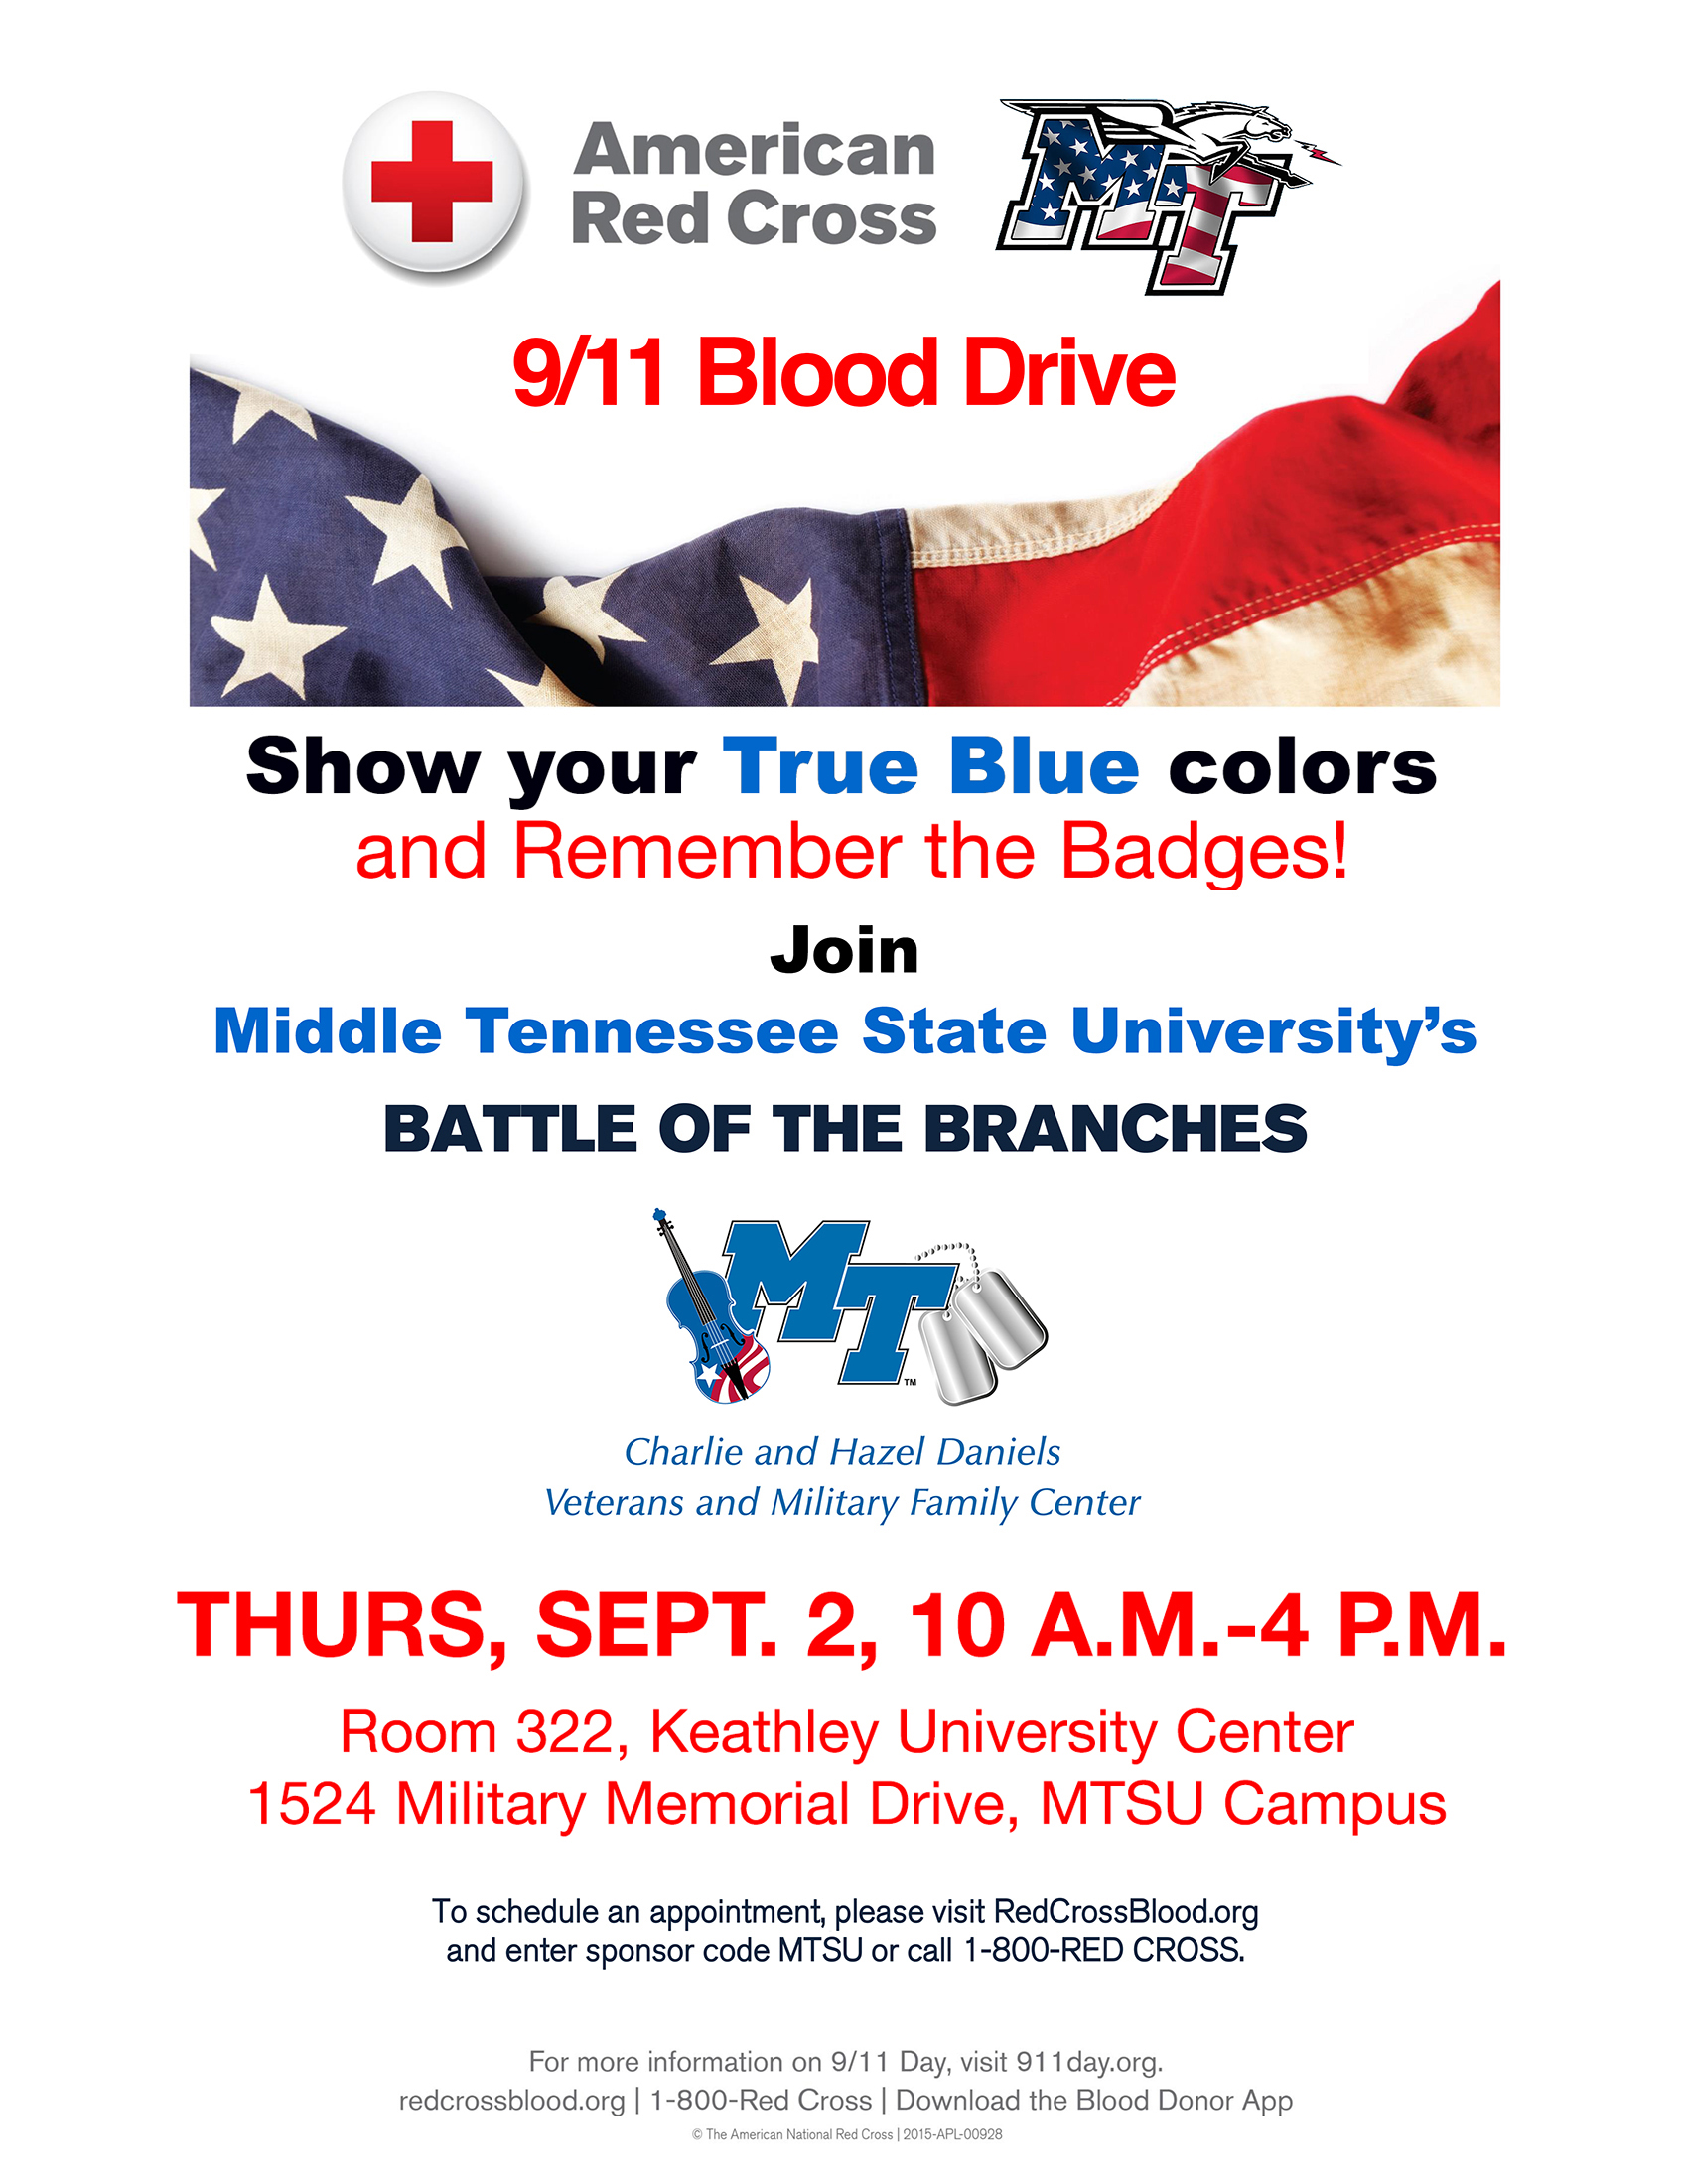 """MTSU """"Battle of the Branches"""" 2021 blood drive poster with details on the Sept. 2 blood drive in Room 322 of the Keathley University Center"""